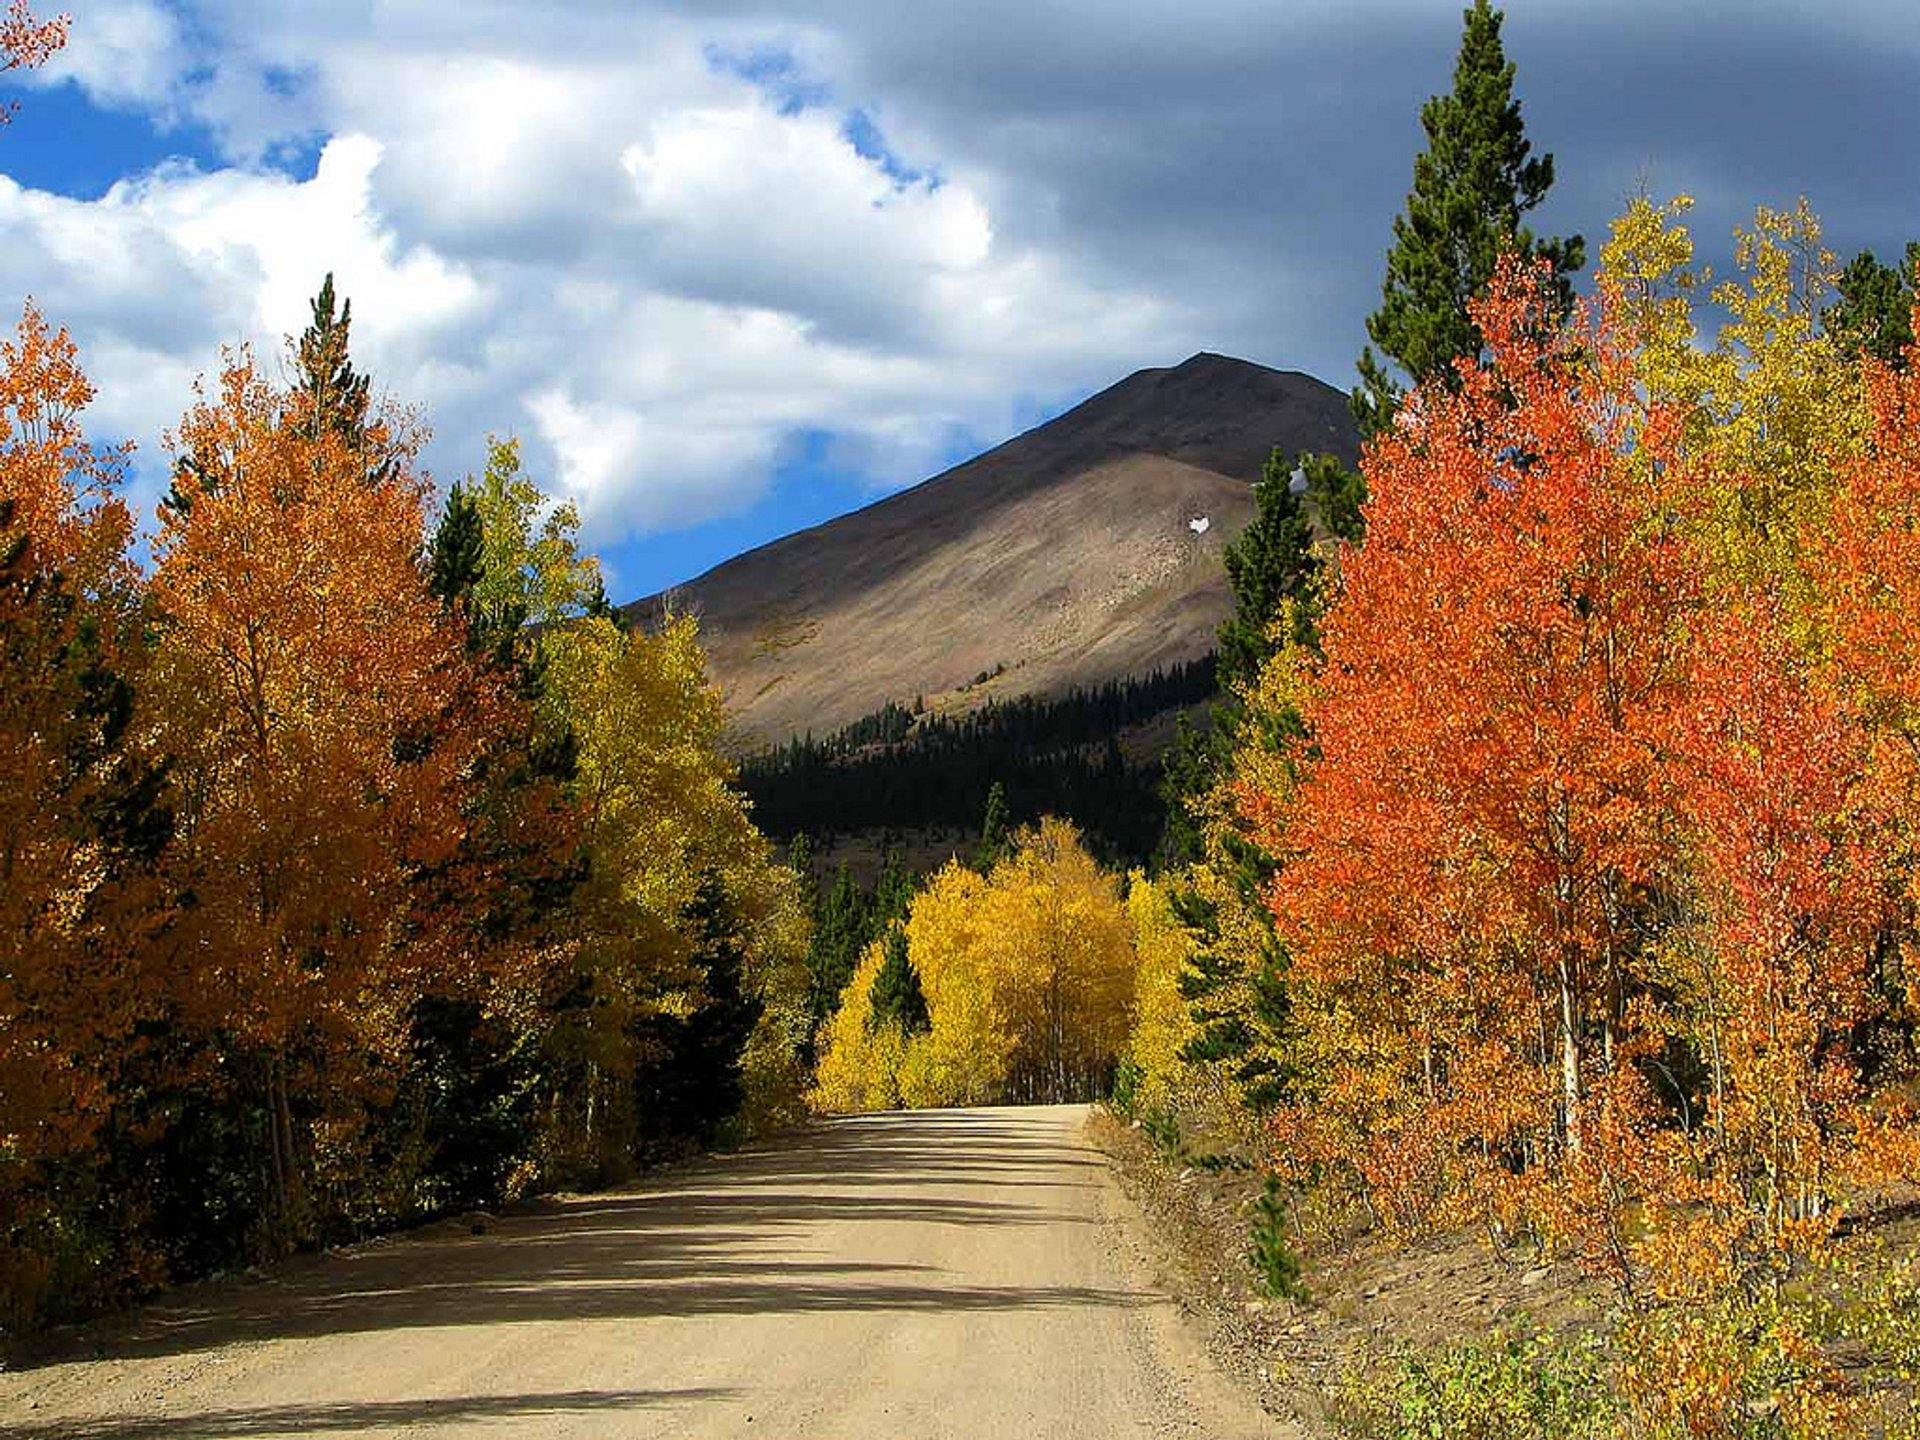 Aspens in color 2020